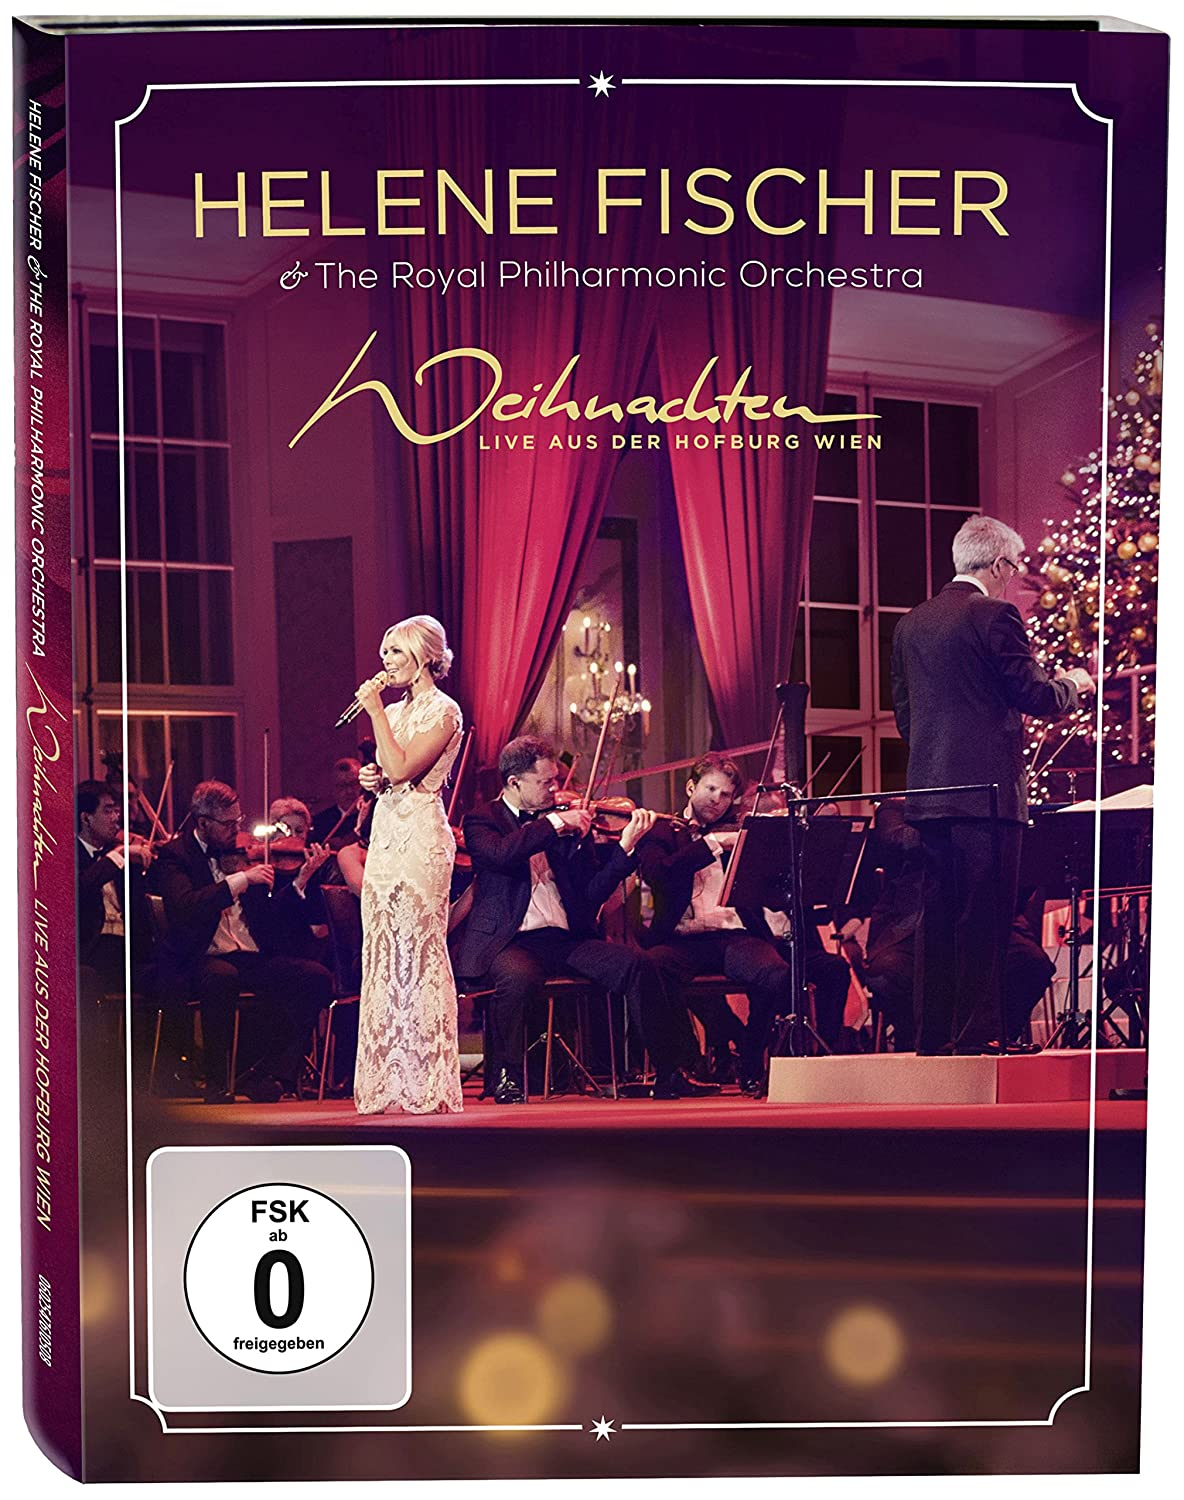 Helene Fischer Und The Royal Philharmonic Orchestra-Weihnachten Live Aus Der Hofburg Wien-DE-DVD-FLAC-2015-VOLDiES Download